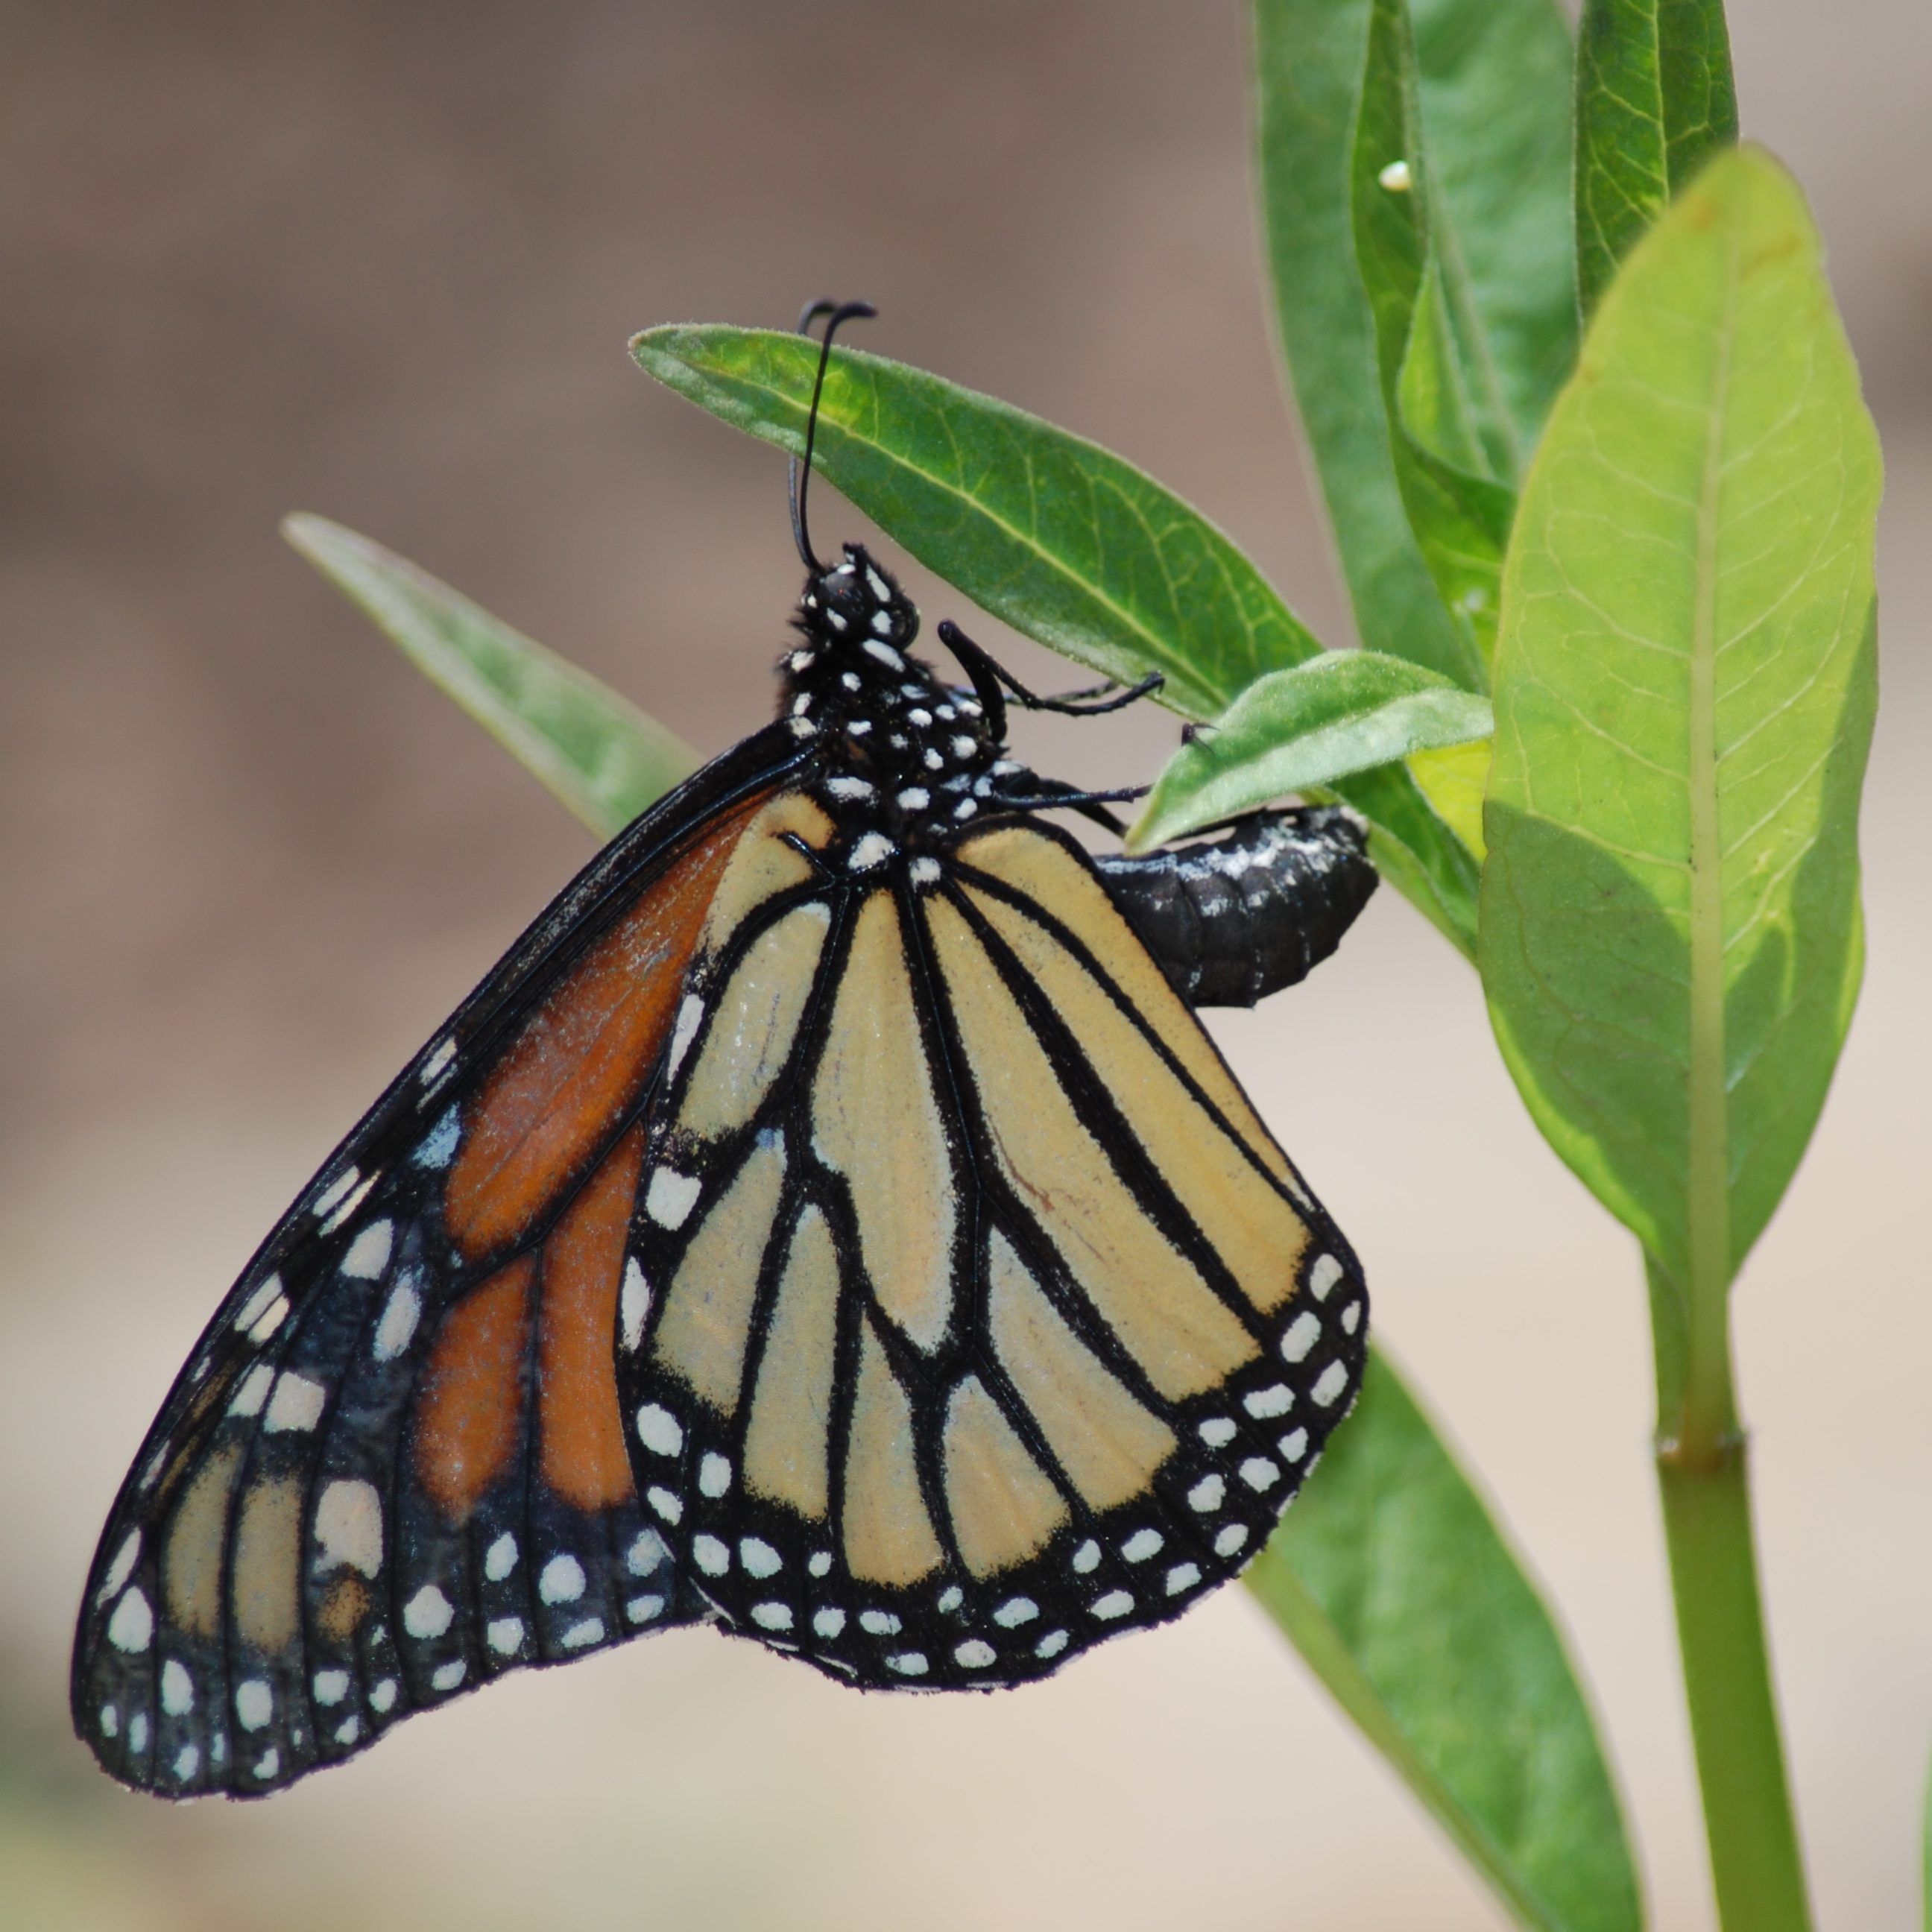 Monarch Butterfly on plant leaf at Topeka Zoo